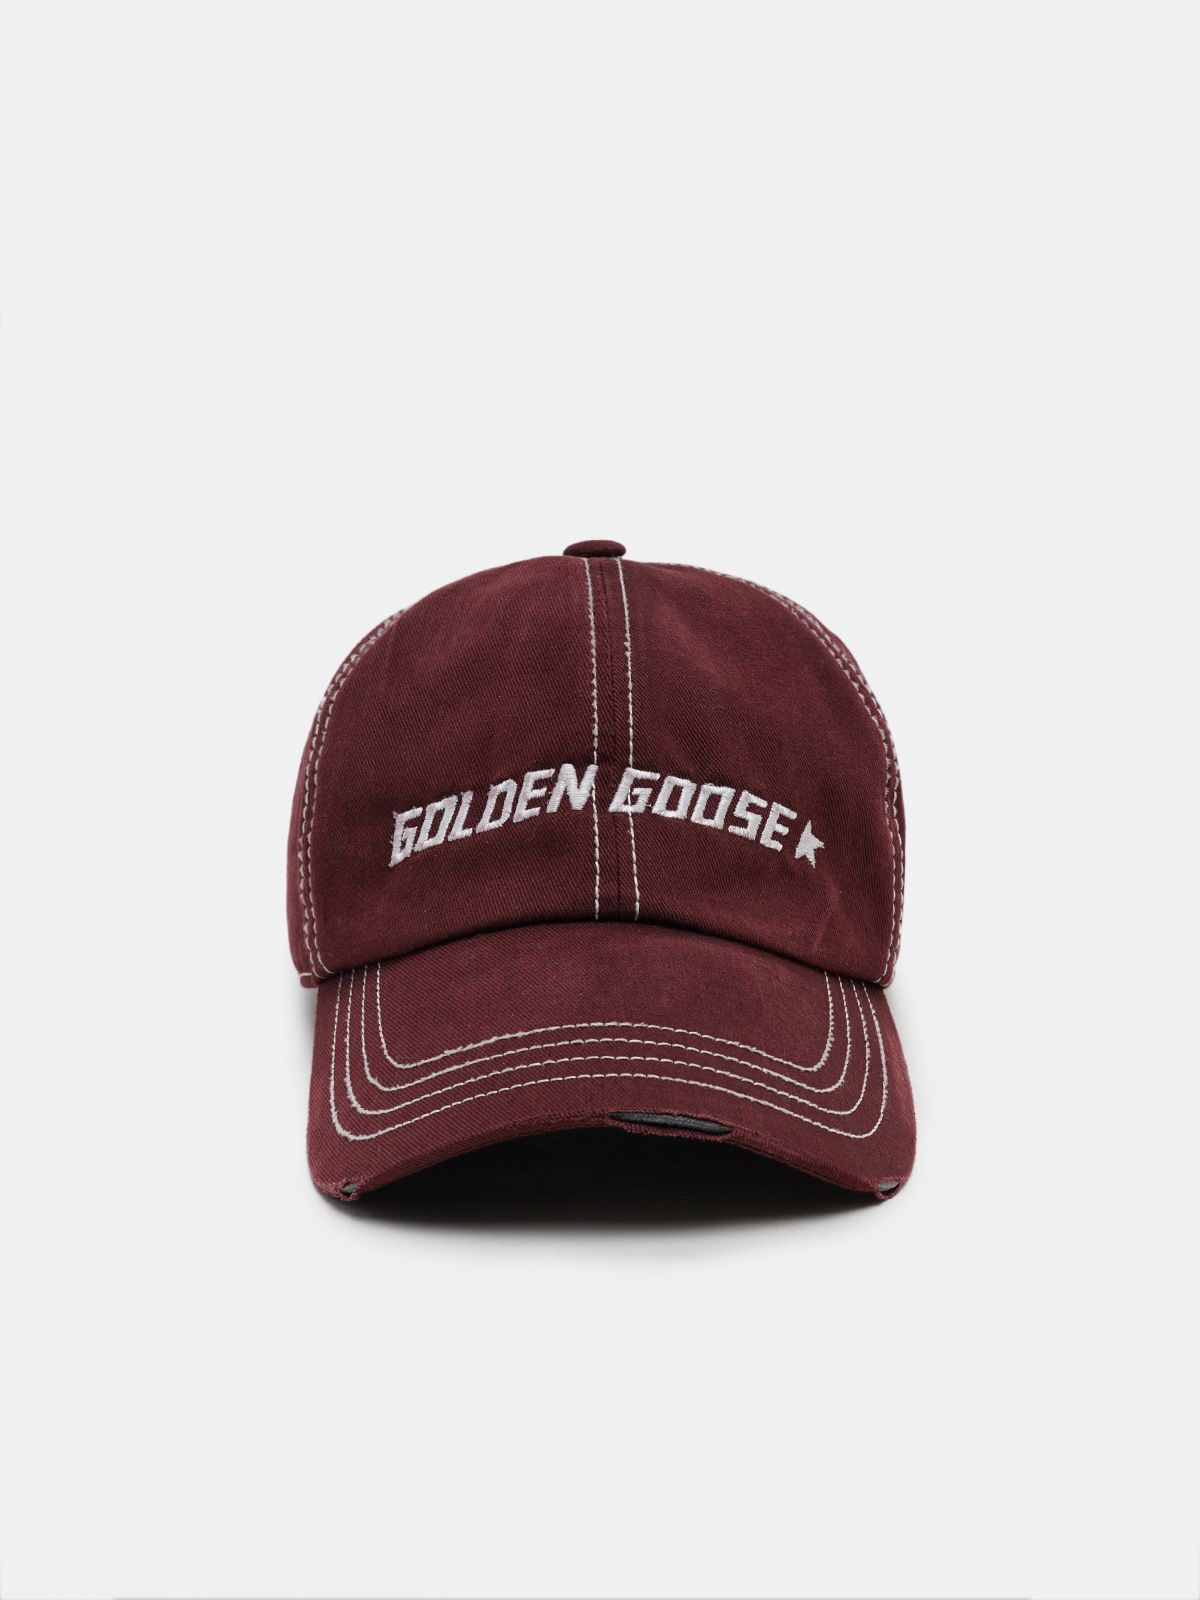 Aden burgundy baseball cap with contrasting logo